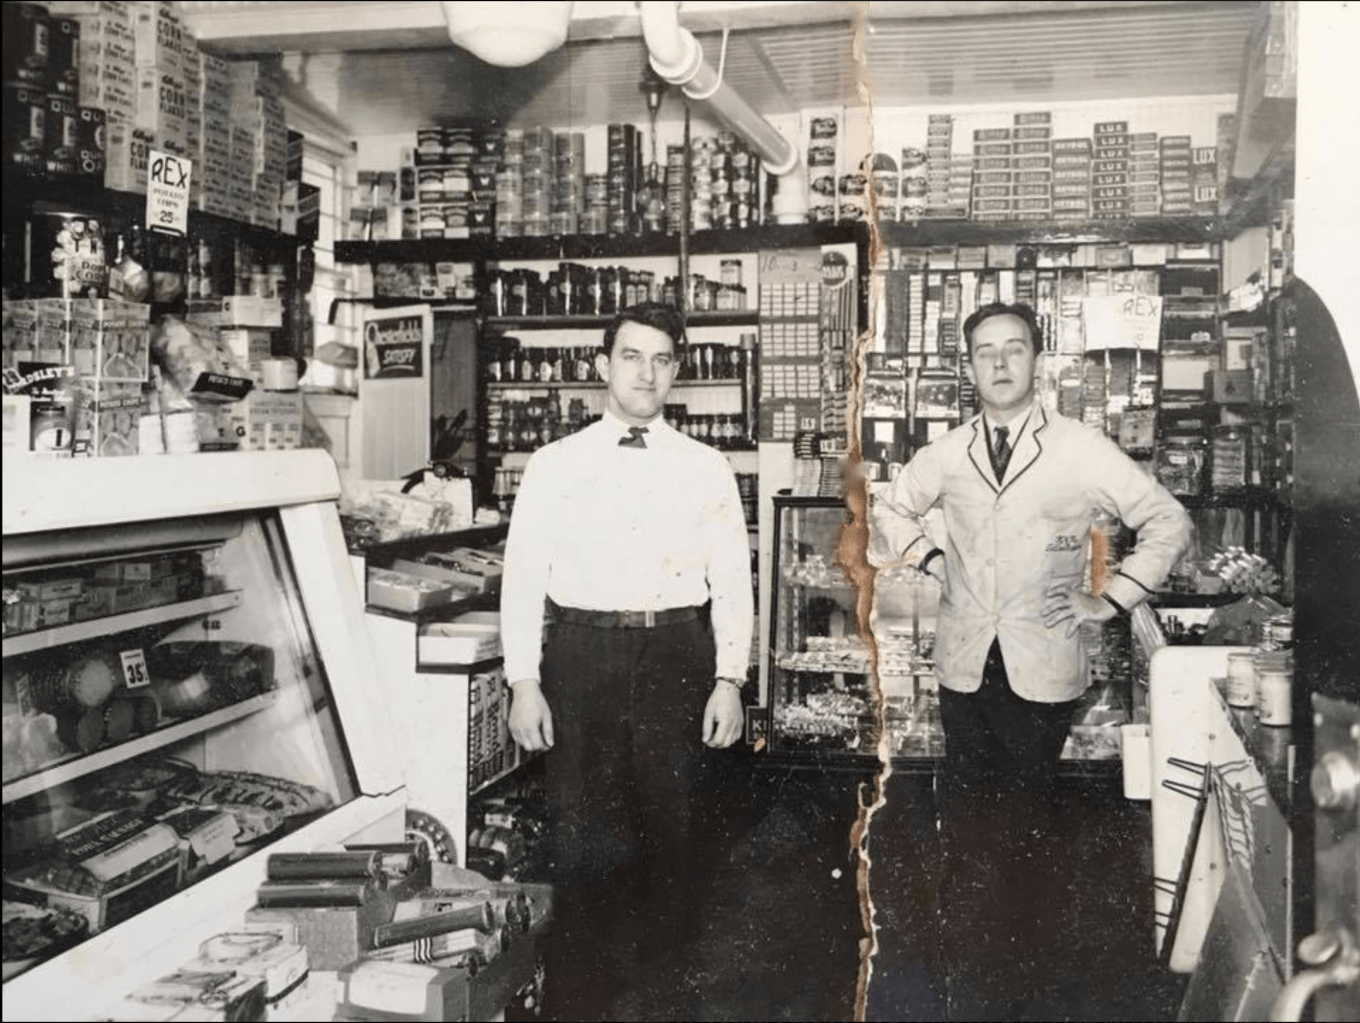 Kenny and McMurray, Woburn deli owners